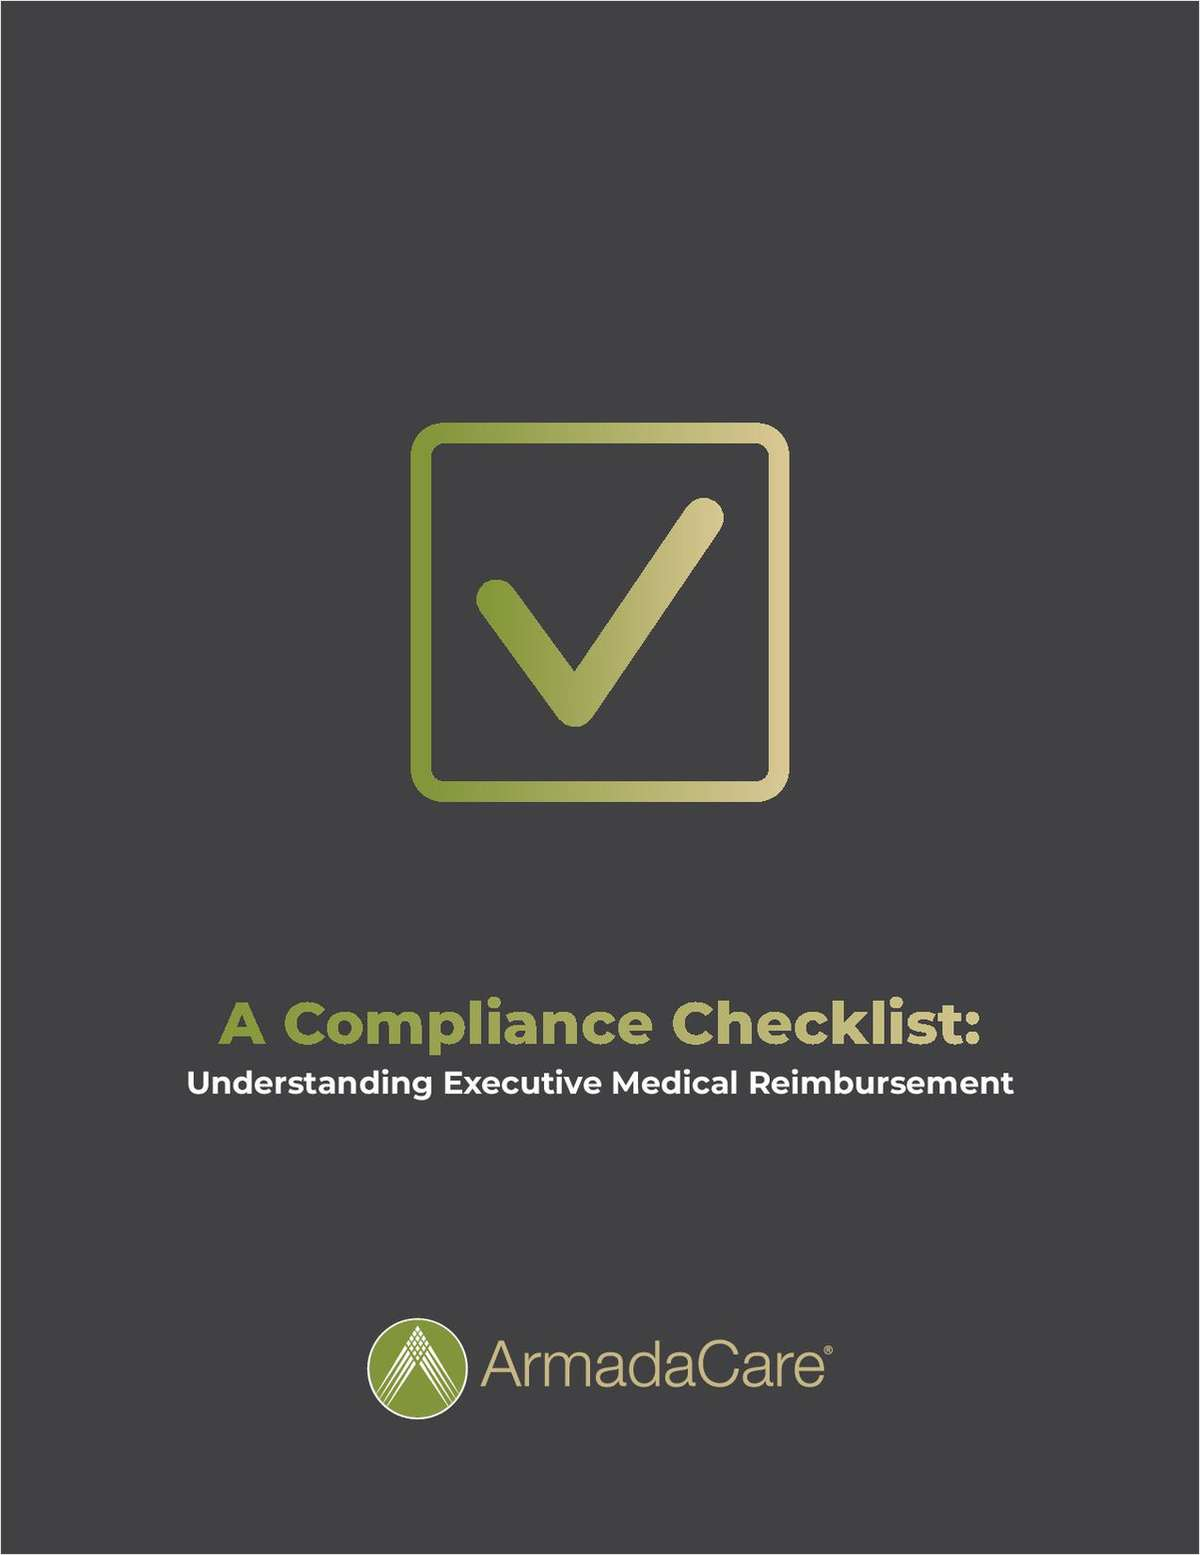 A Compliance Checklist: Understanding Executive Medical Reimbursement